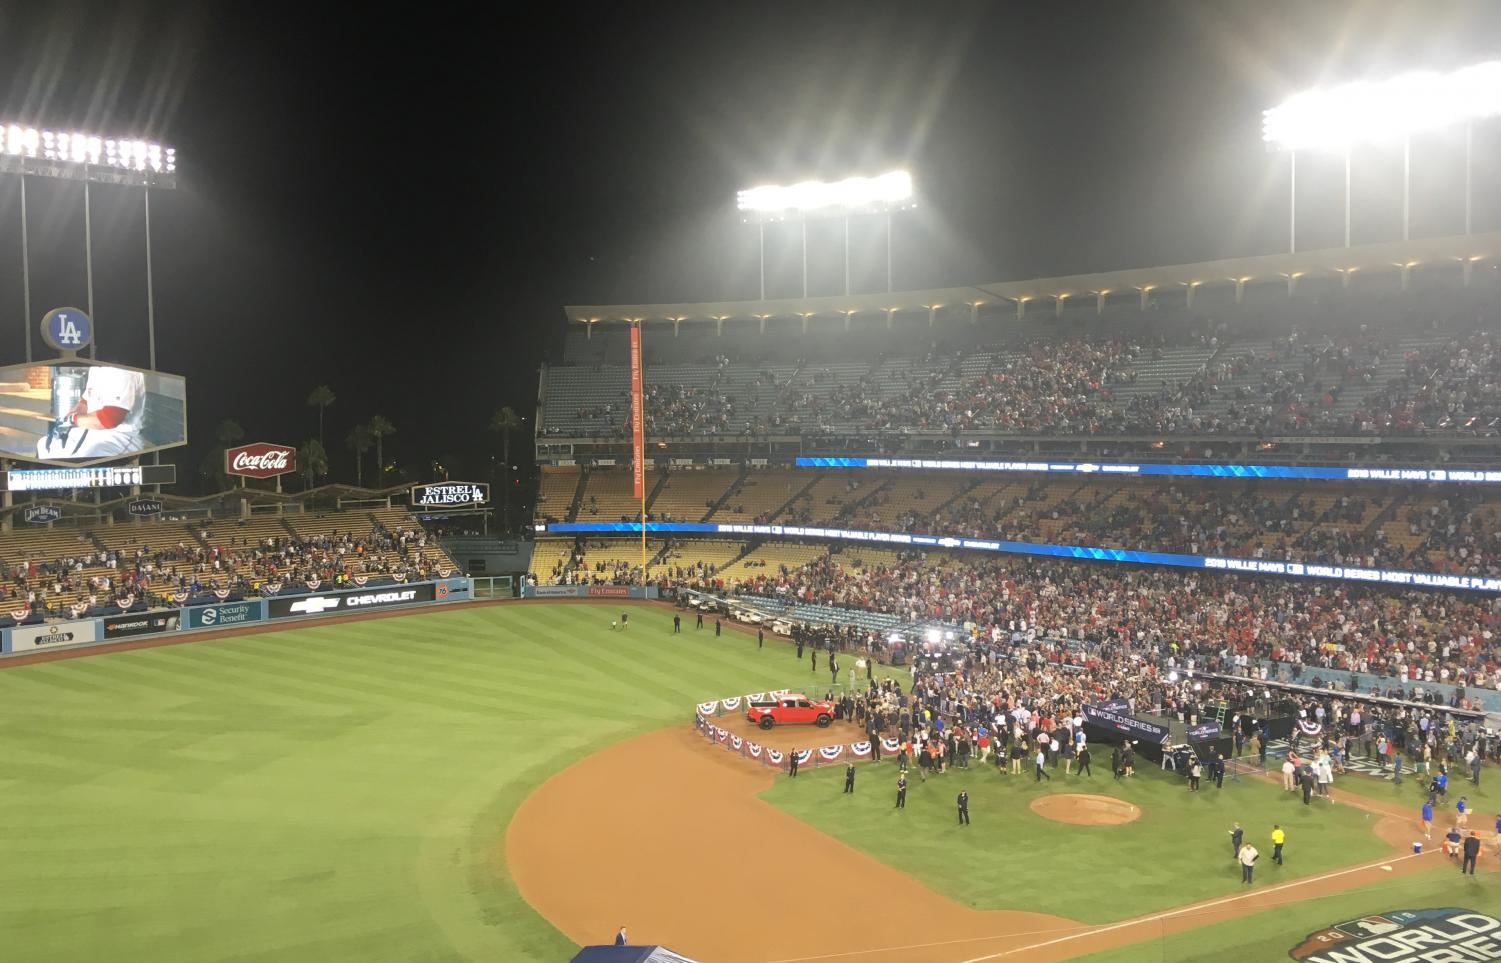 AFTERMATH:    Red Sox players meet the news media in Dodger Stadium after winning the World Series four games to one  Oct. 29.  The stands above them, which had been a sea of blue and white, had mostly emptied out -- except for Boston fans, dressed in red.